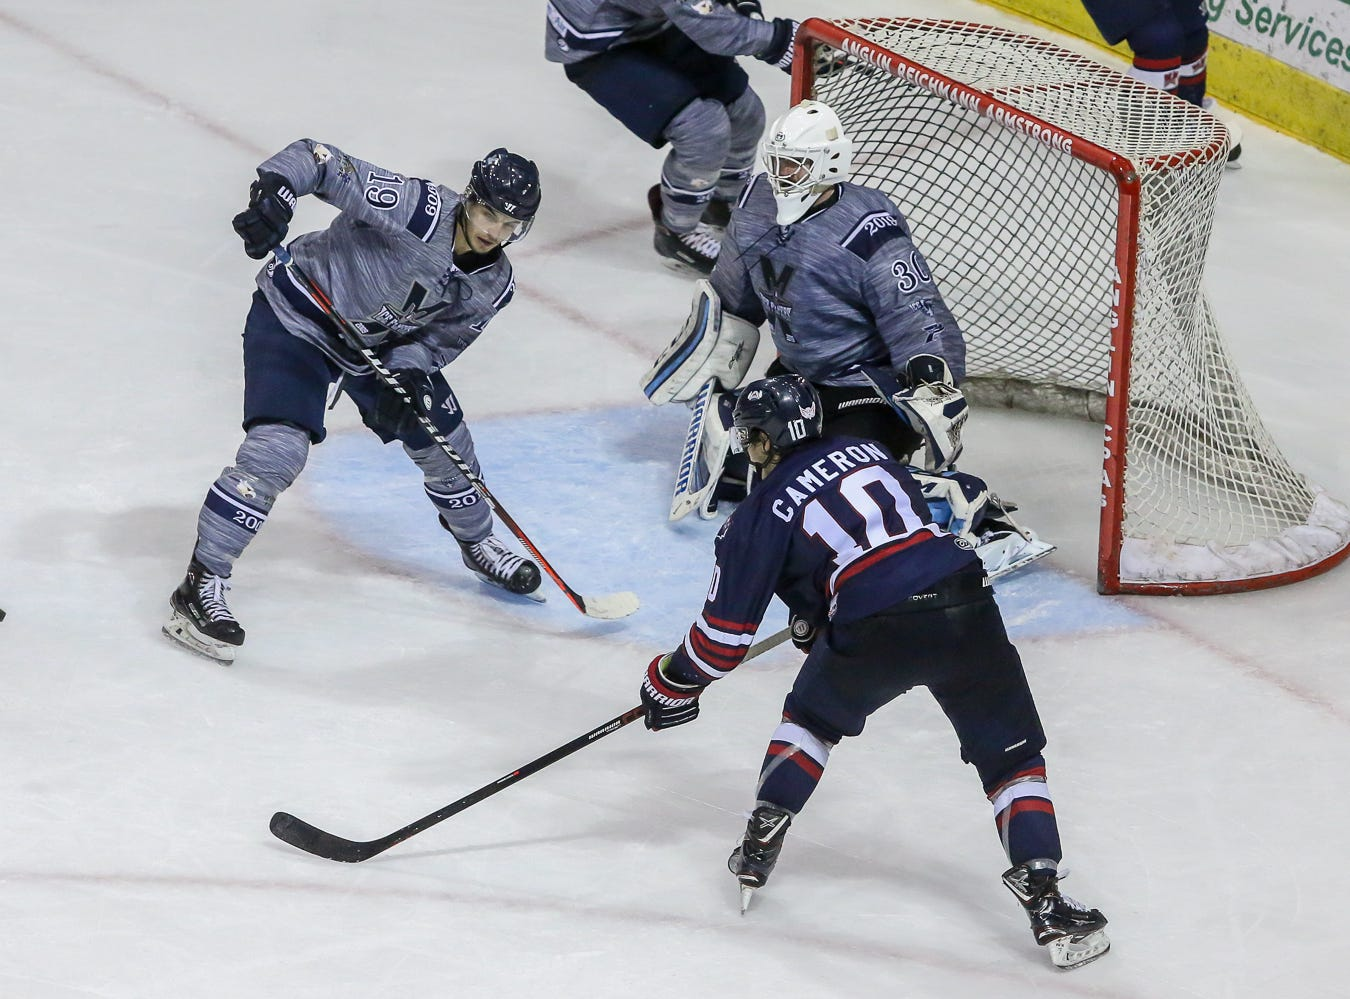 Pensacola's Brett D'Andrea (19) and Macon's Caleb Cameron (10) watch as the puck flies away from the net after goaltender Brian Billett (30) deflected it during the last home game of the regular season at the Pensacola Bay Center on Saturday, March 23, 2019. With over 4,300 people in attendance for Pensacola's 3-1 victory, the Ice Flyers mark six straight years of over 100,000 people at their home games each season. The team has won their last five games in a row and will finish out their last five games on the road before entering the playoffs in a couple of weeks.